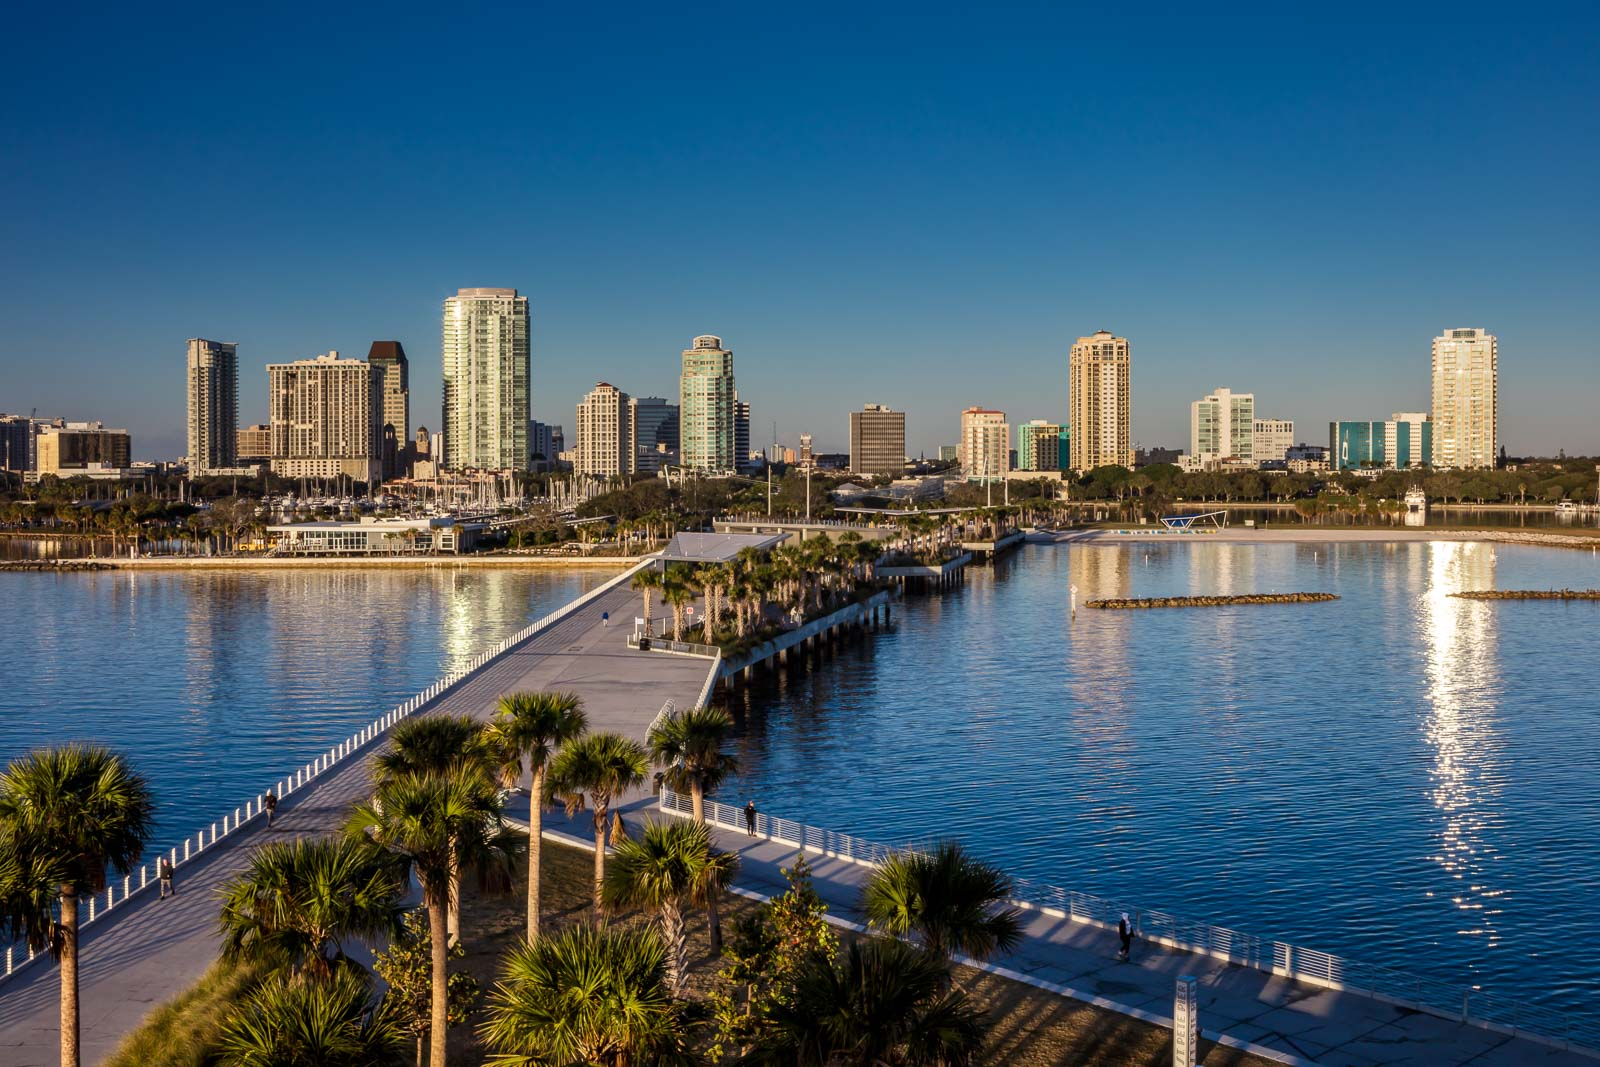 Skyline of Downtown St.Petersburg, Florida - Professional Photographer - Brian K Crain